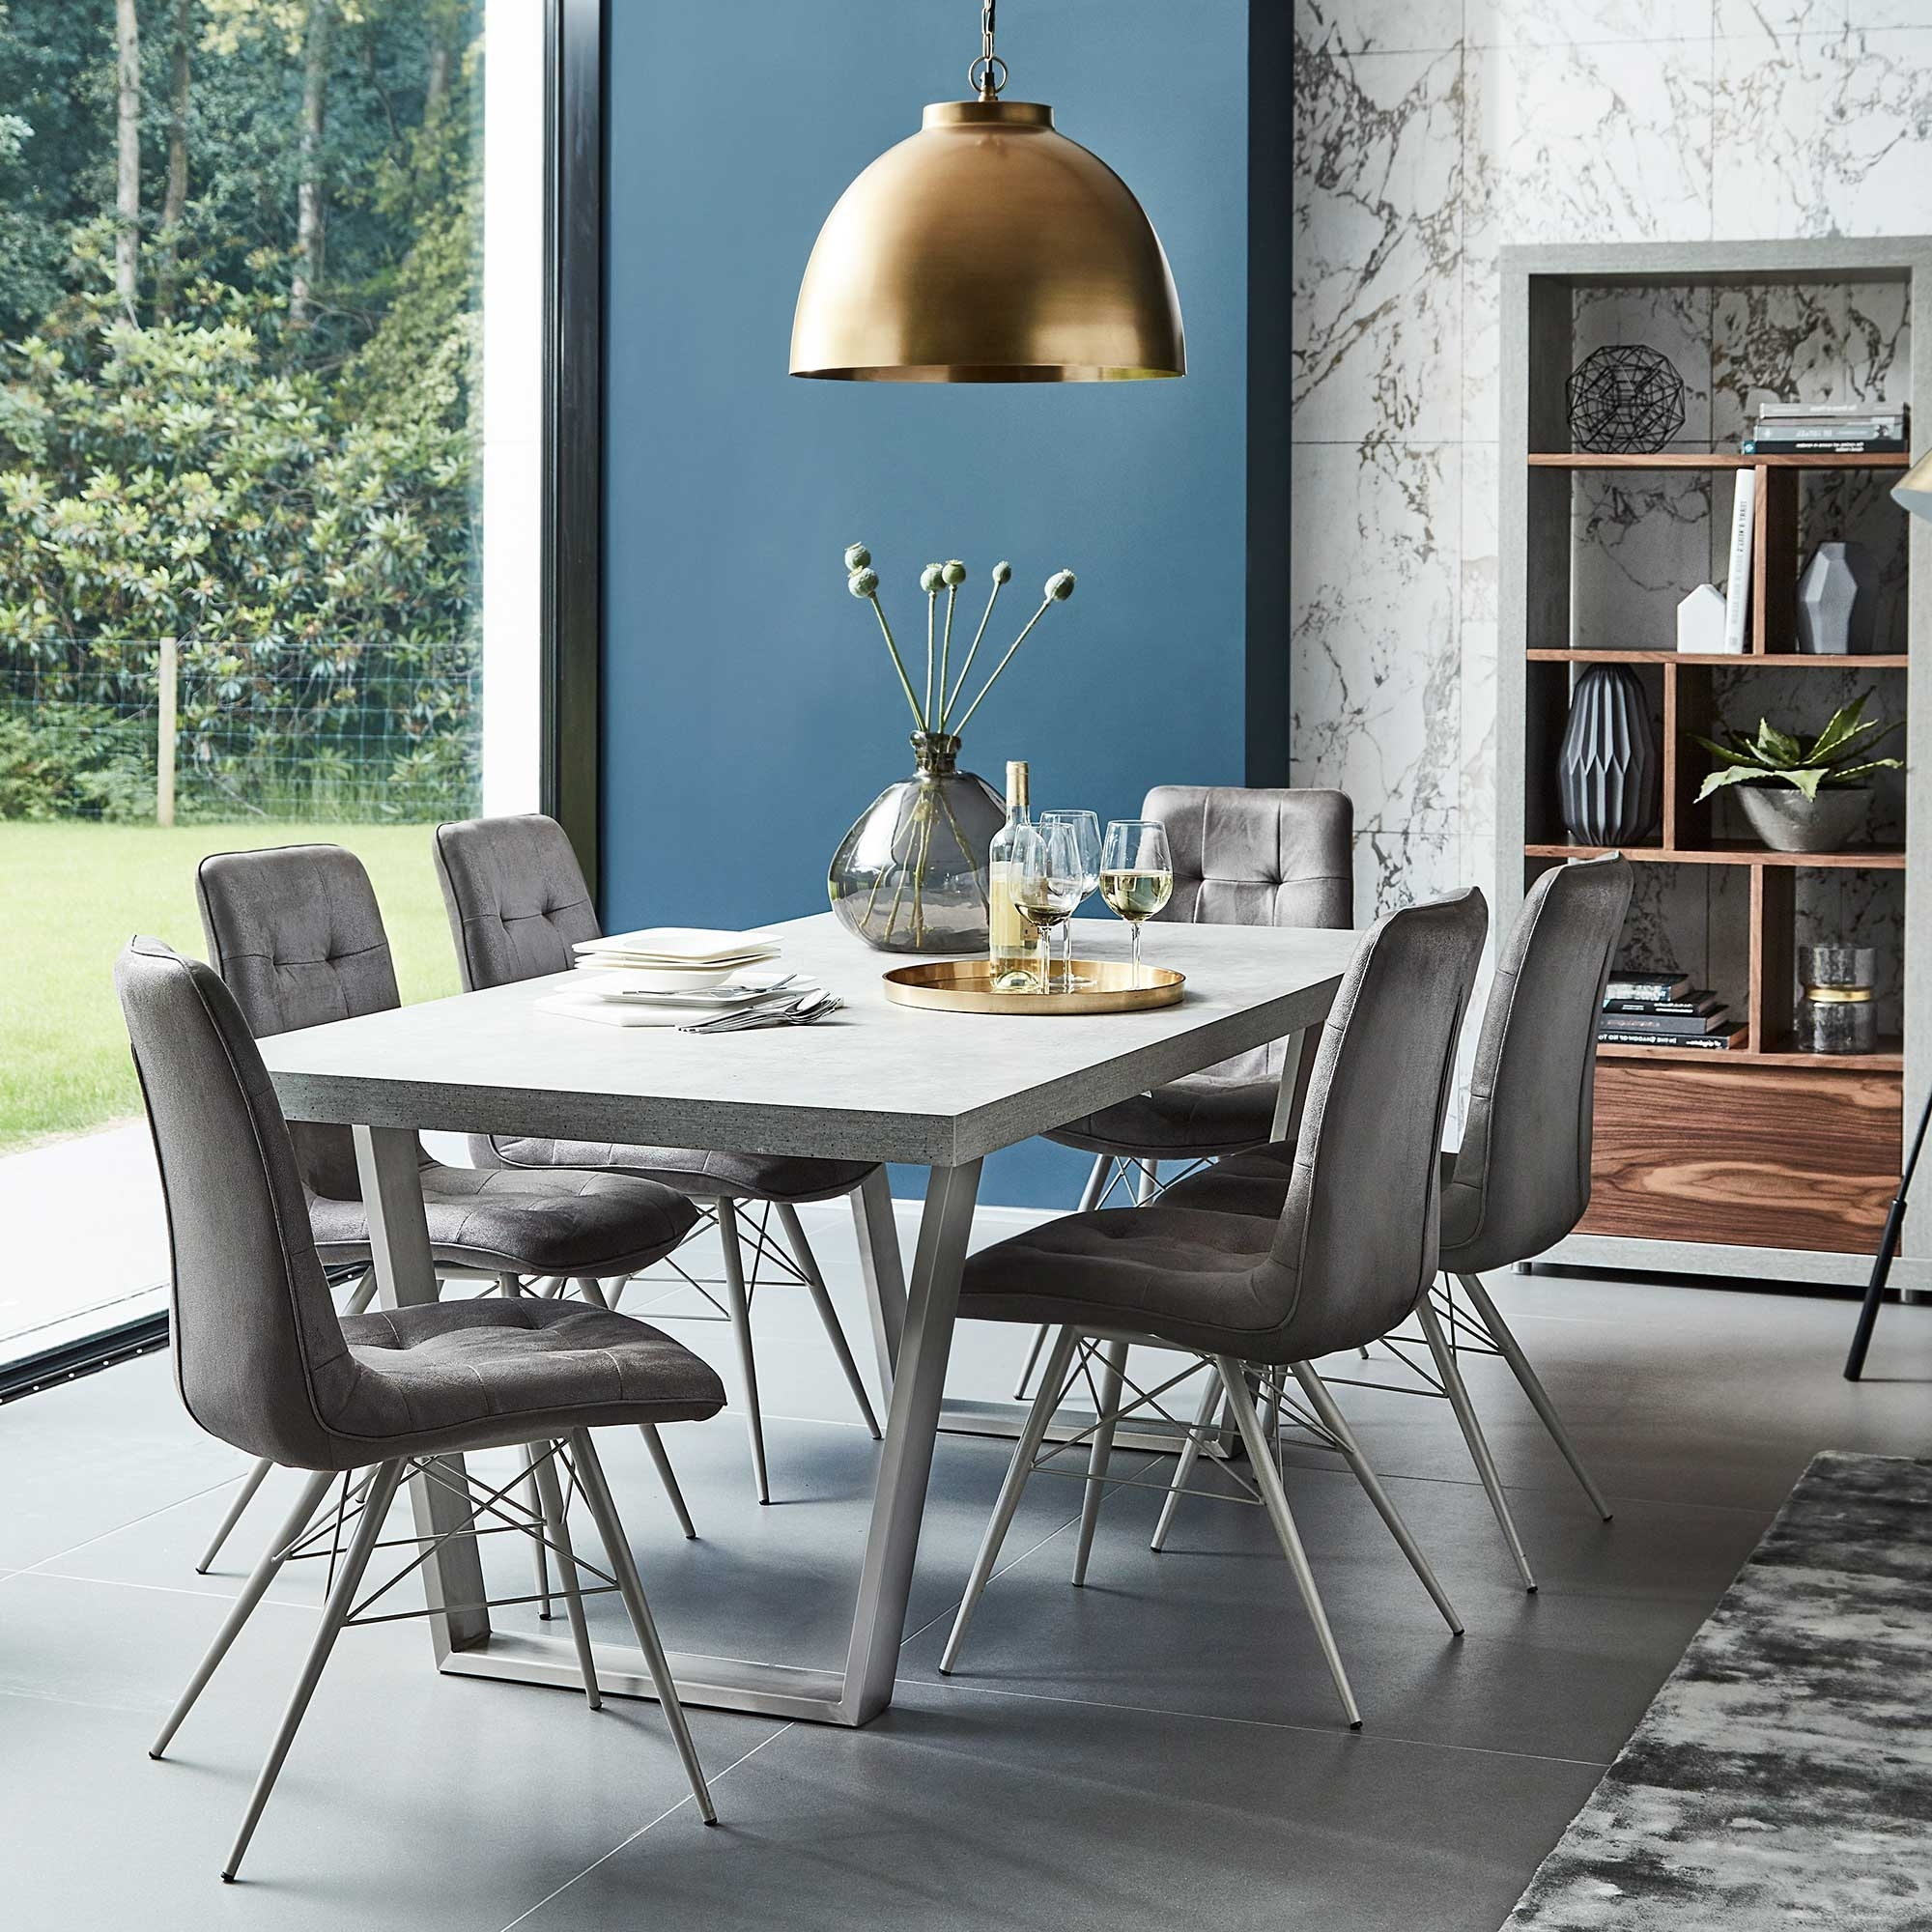 Dining Room Tables And Chairs With Regard To 2018 Dining Ranges (View 12 of 25)